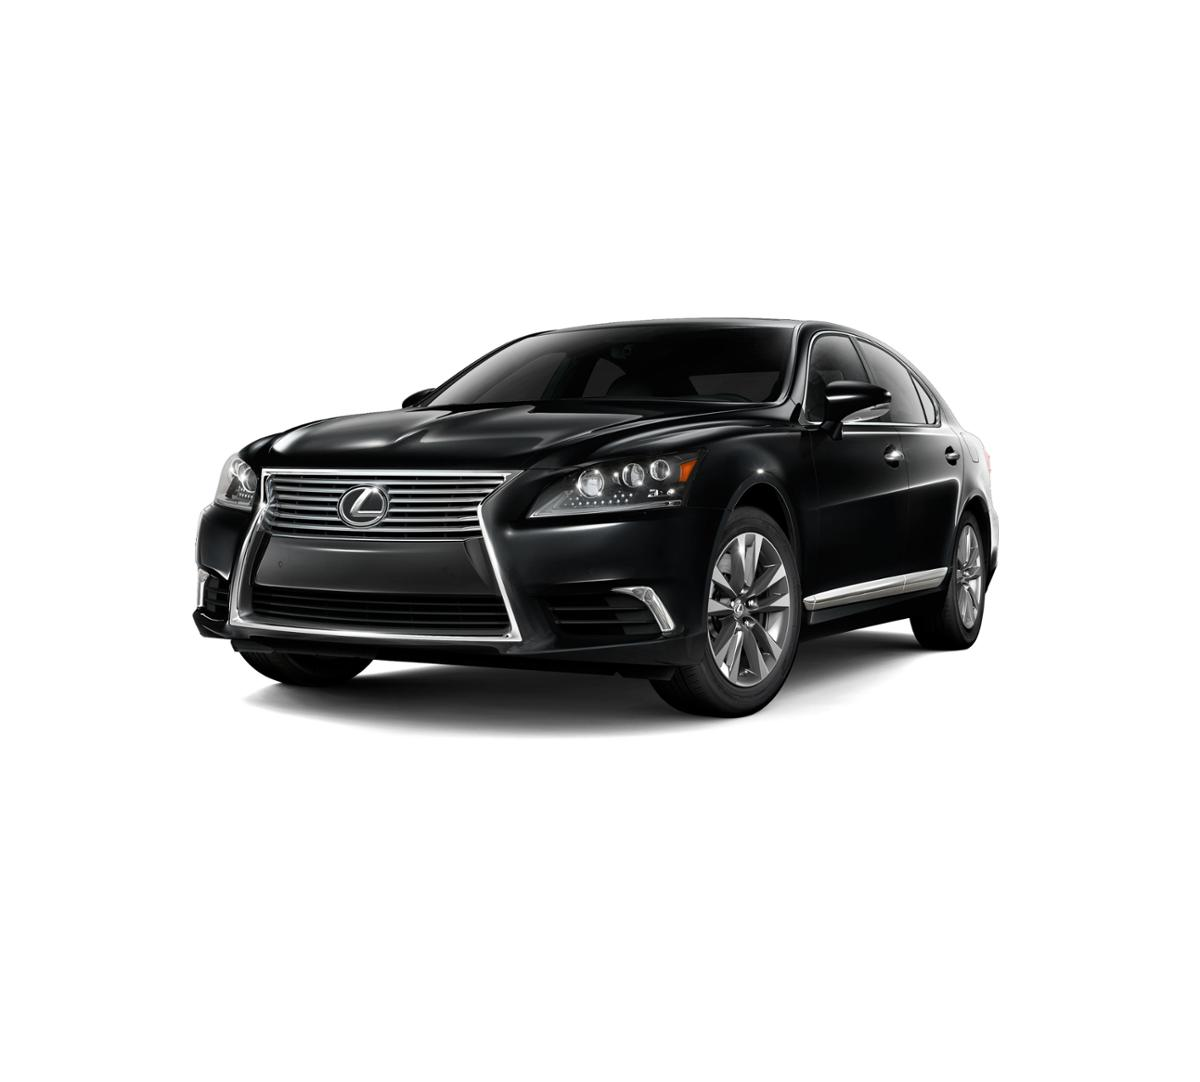 2013 Lexus Ls460 For Sale: Owings Mills Obsidian 2017 Lexus LS 460: New Car For Sale